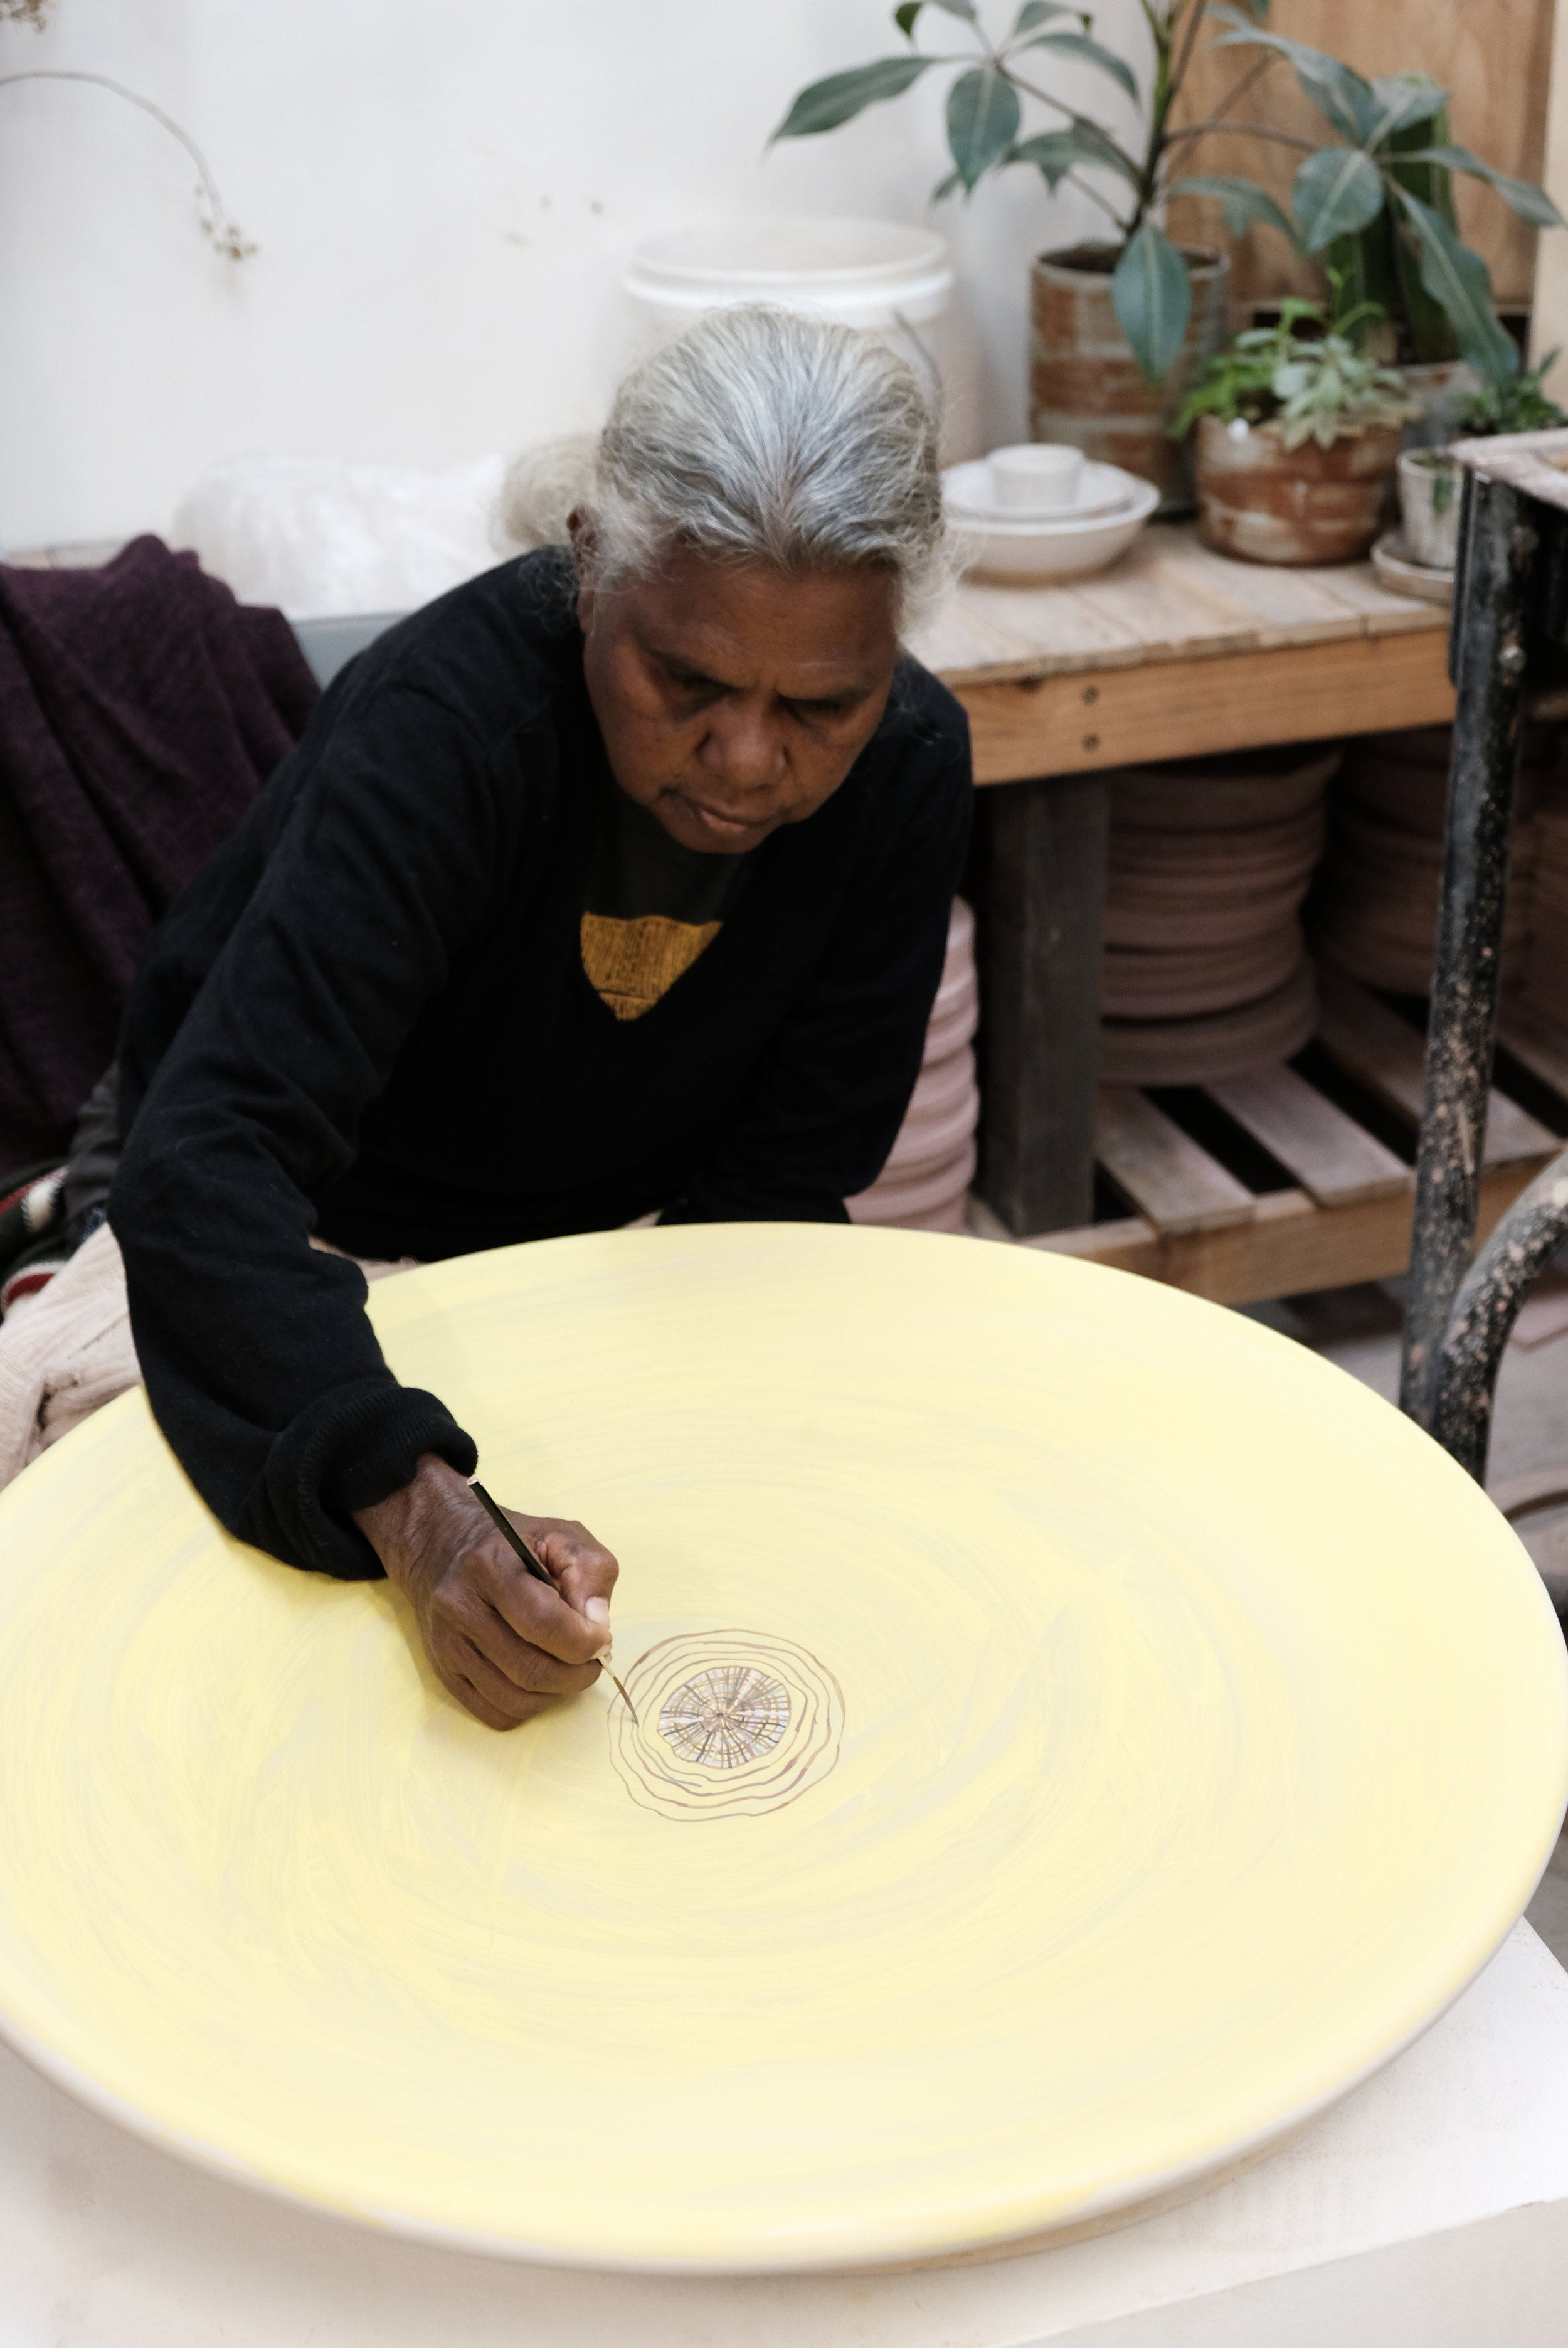 Regina painting in ochre on platters created by Mark Heidenreich. Photo courtesy of JamFactory.